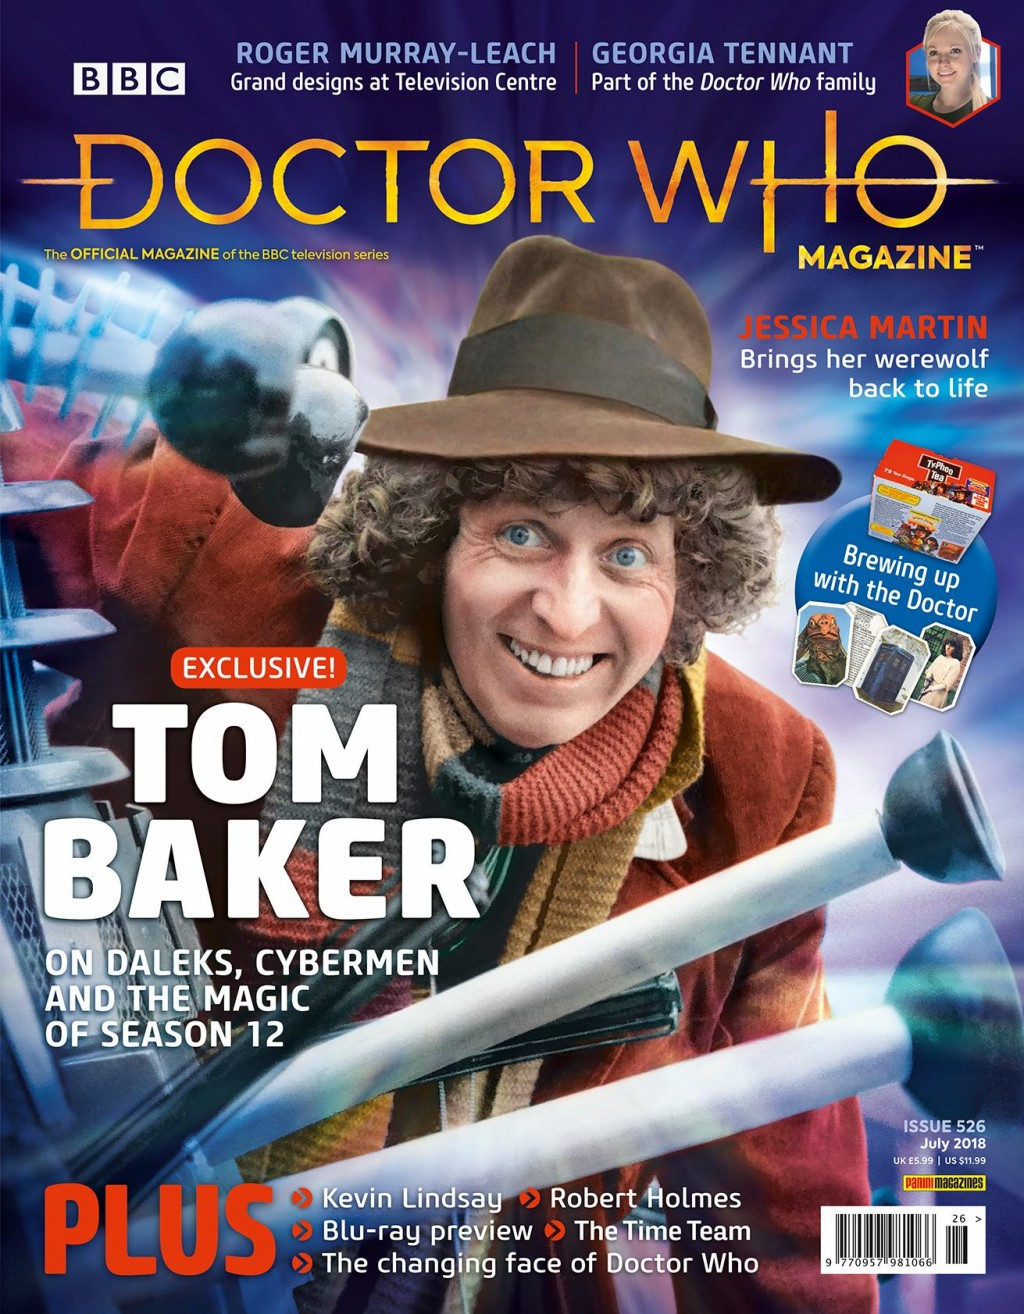 Doctor Who Magazine #526